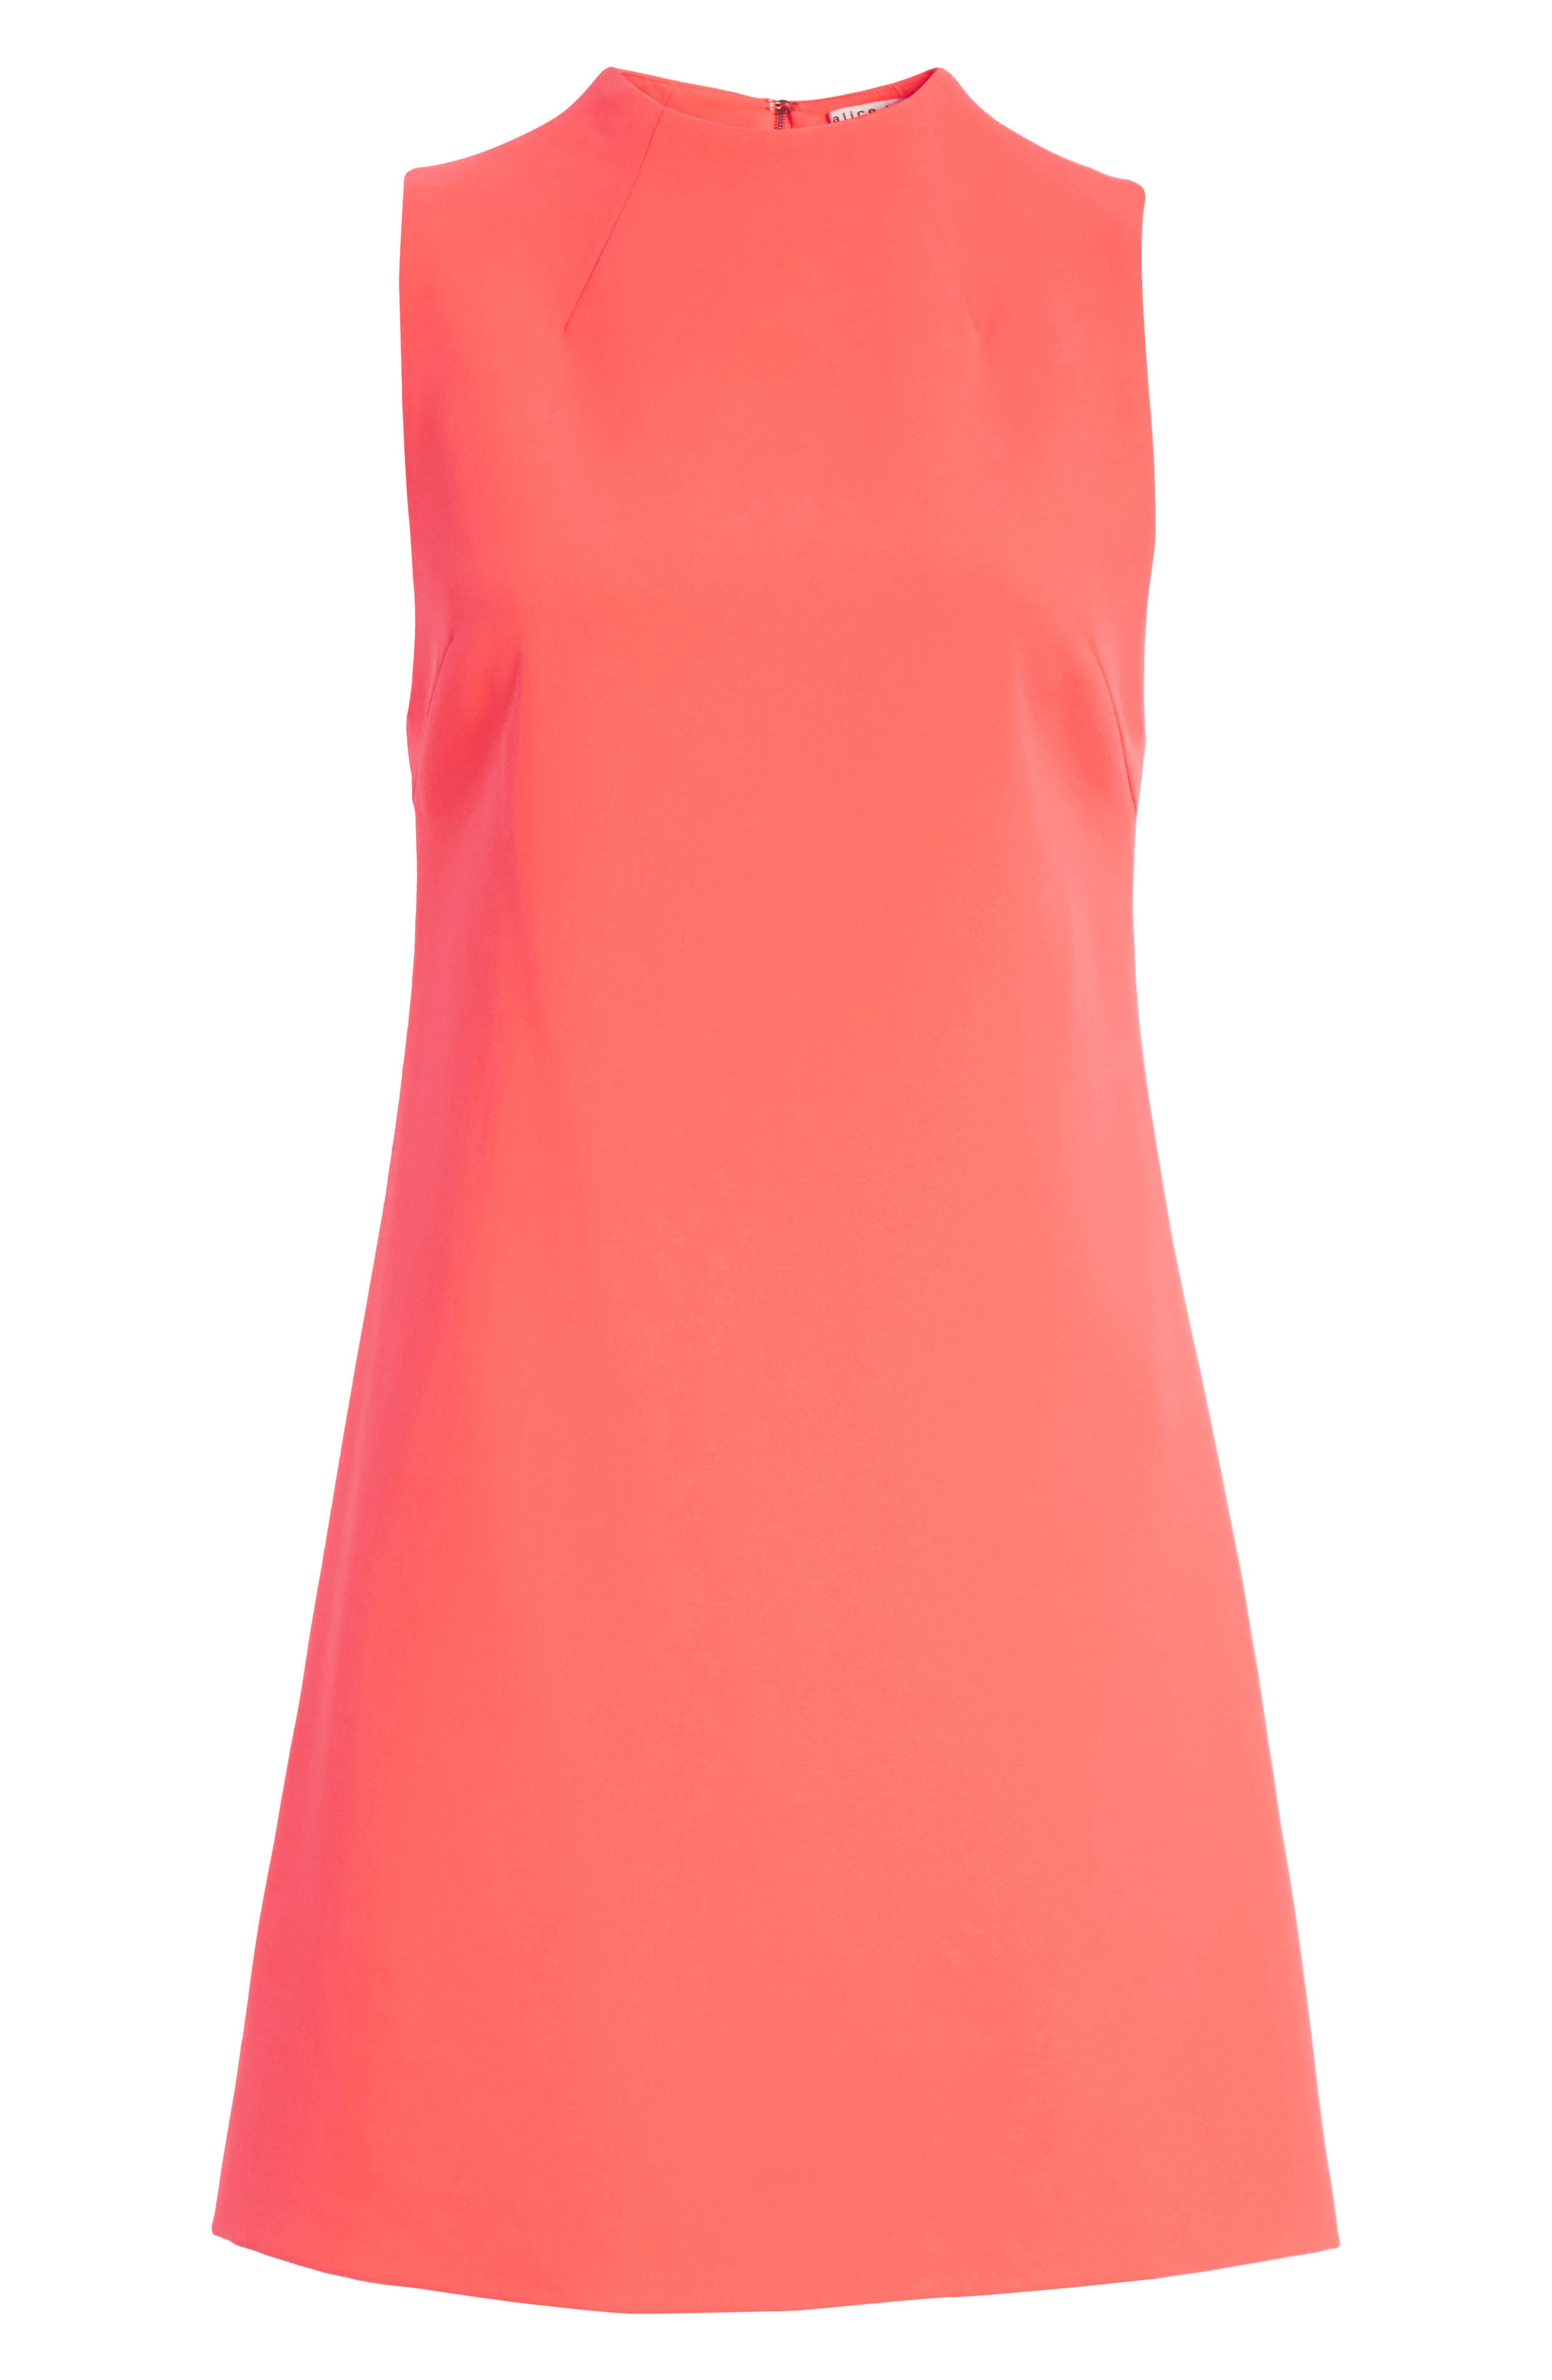 Coley A-Line Shift Dress,                             Alternate thumbnail 6, color,                             Neon Coral